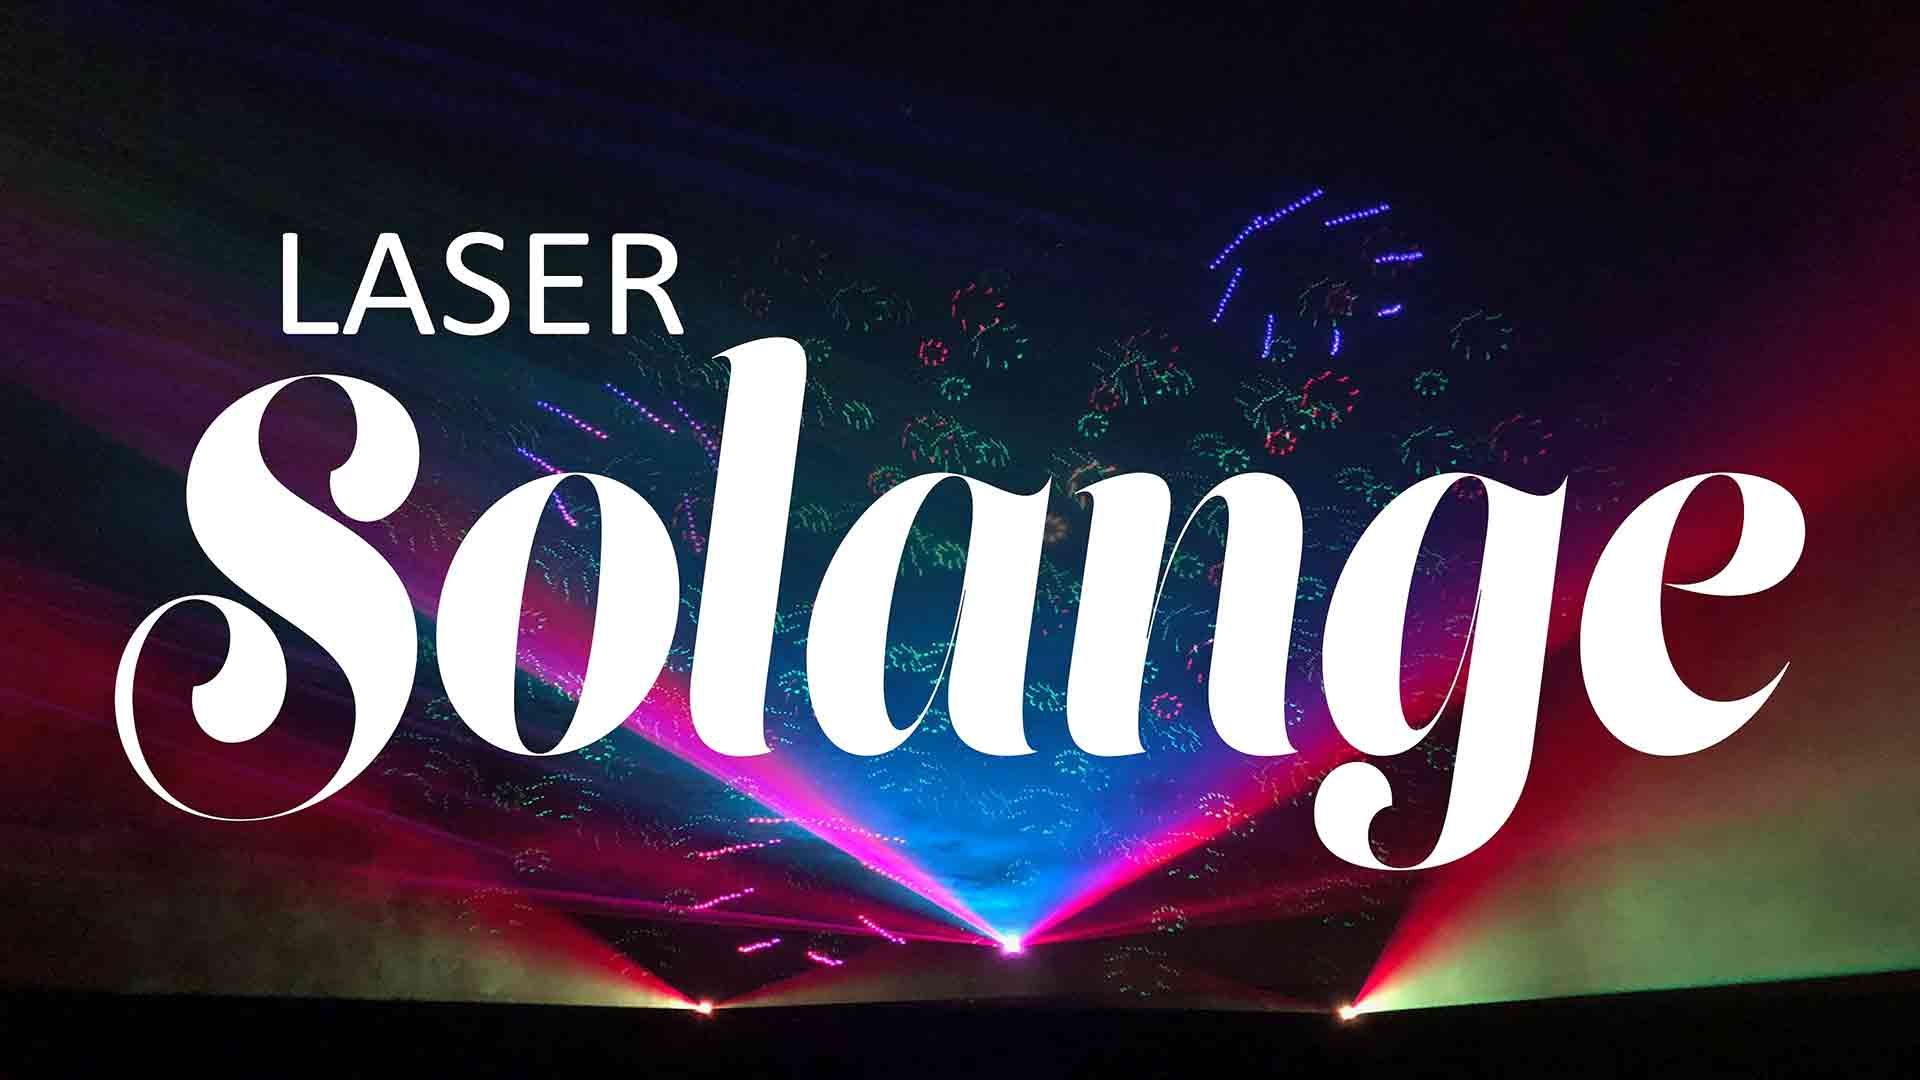 Downtown    Laser Dome: PacifIc Science Center    Show  Laser Solange   Date  Weekly:   Sat   Time  9:00pm   Place  200 2nd Avenue North, Seattle, WA 98109